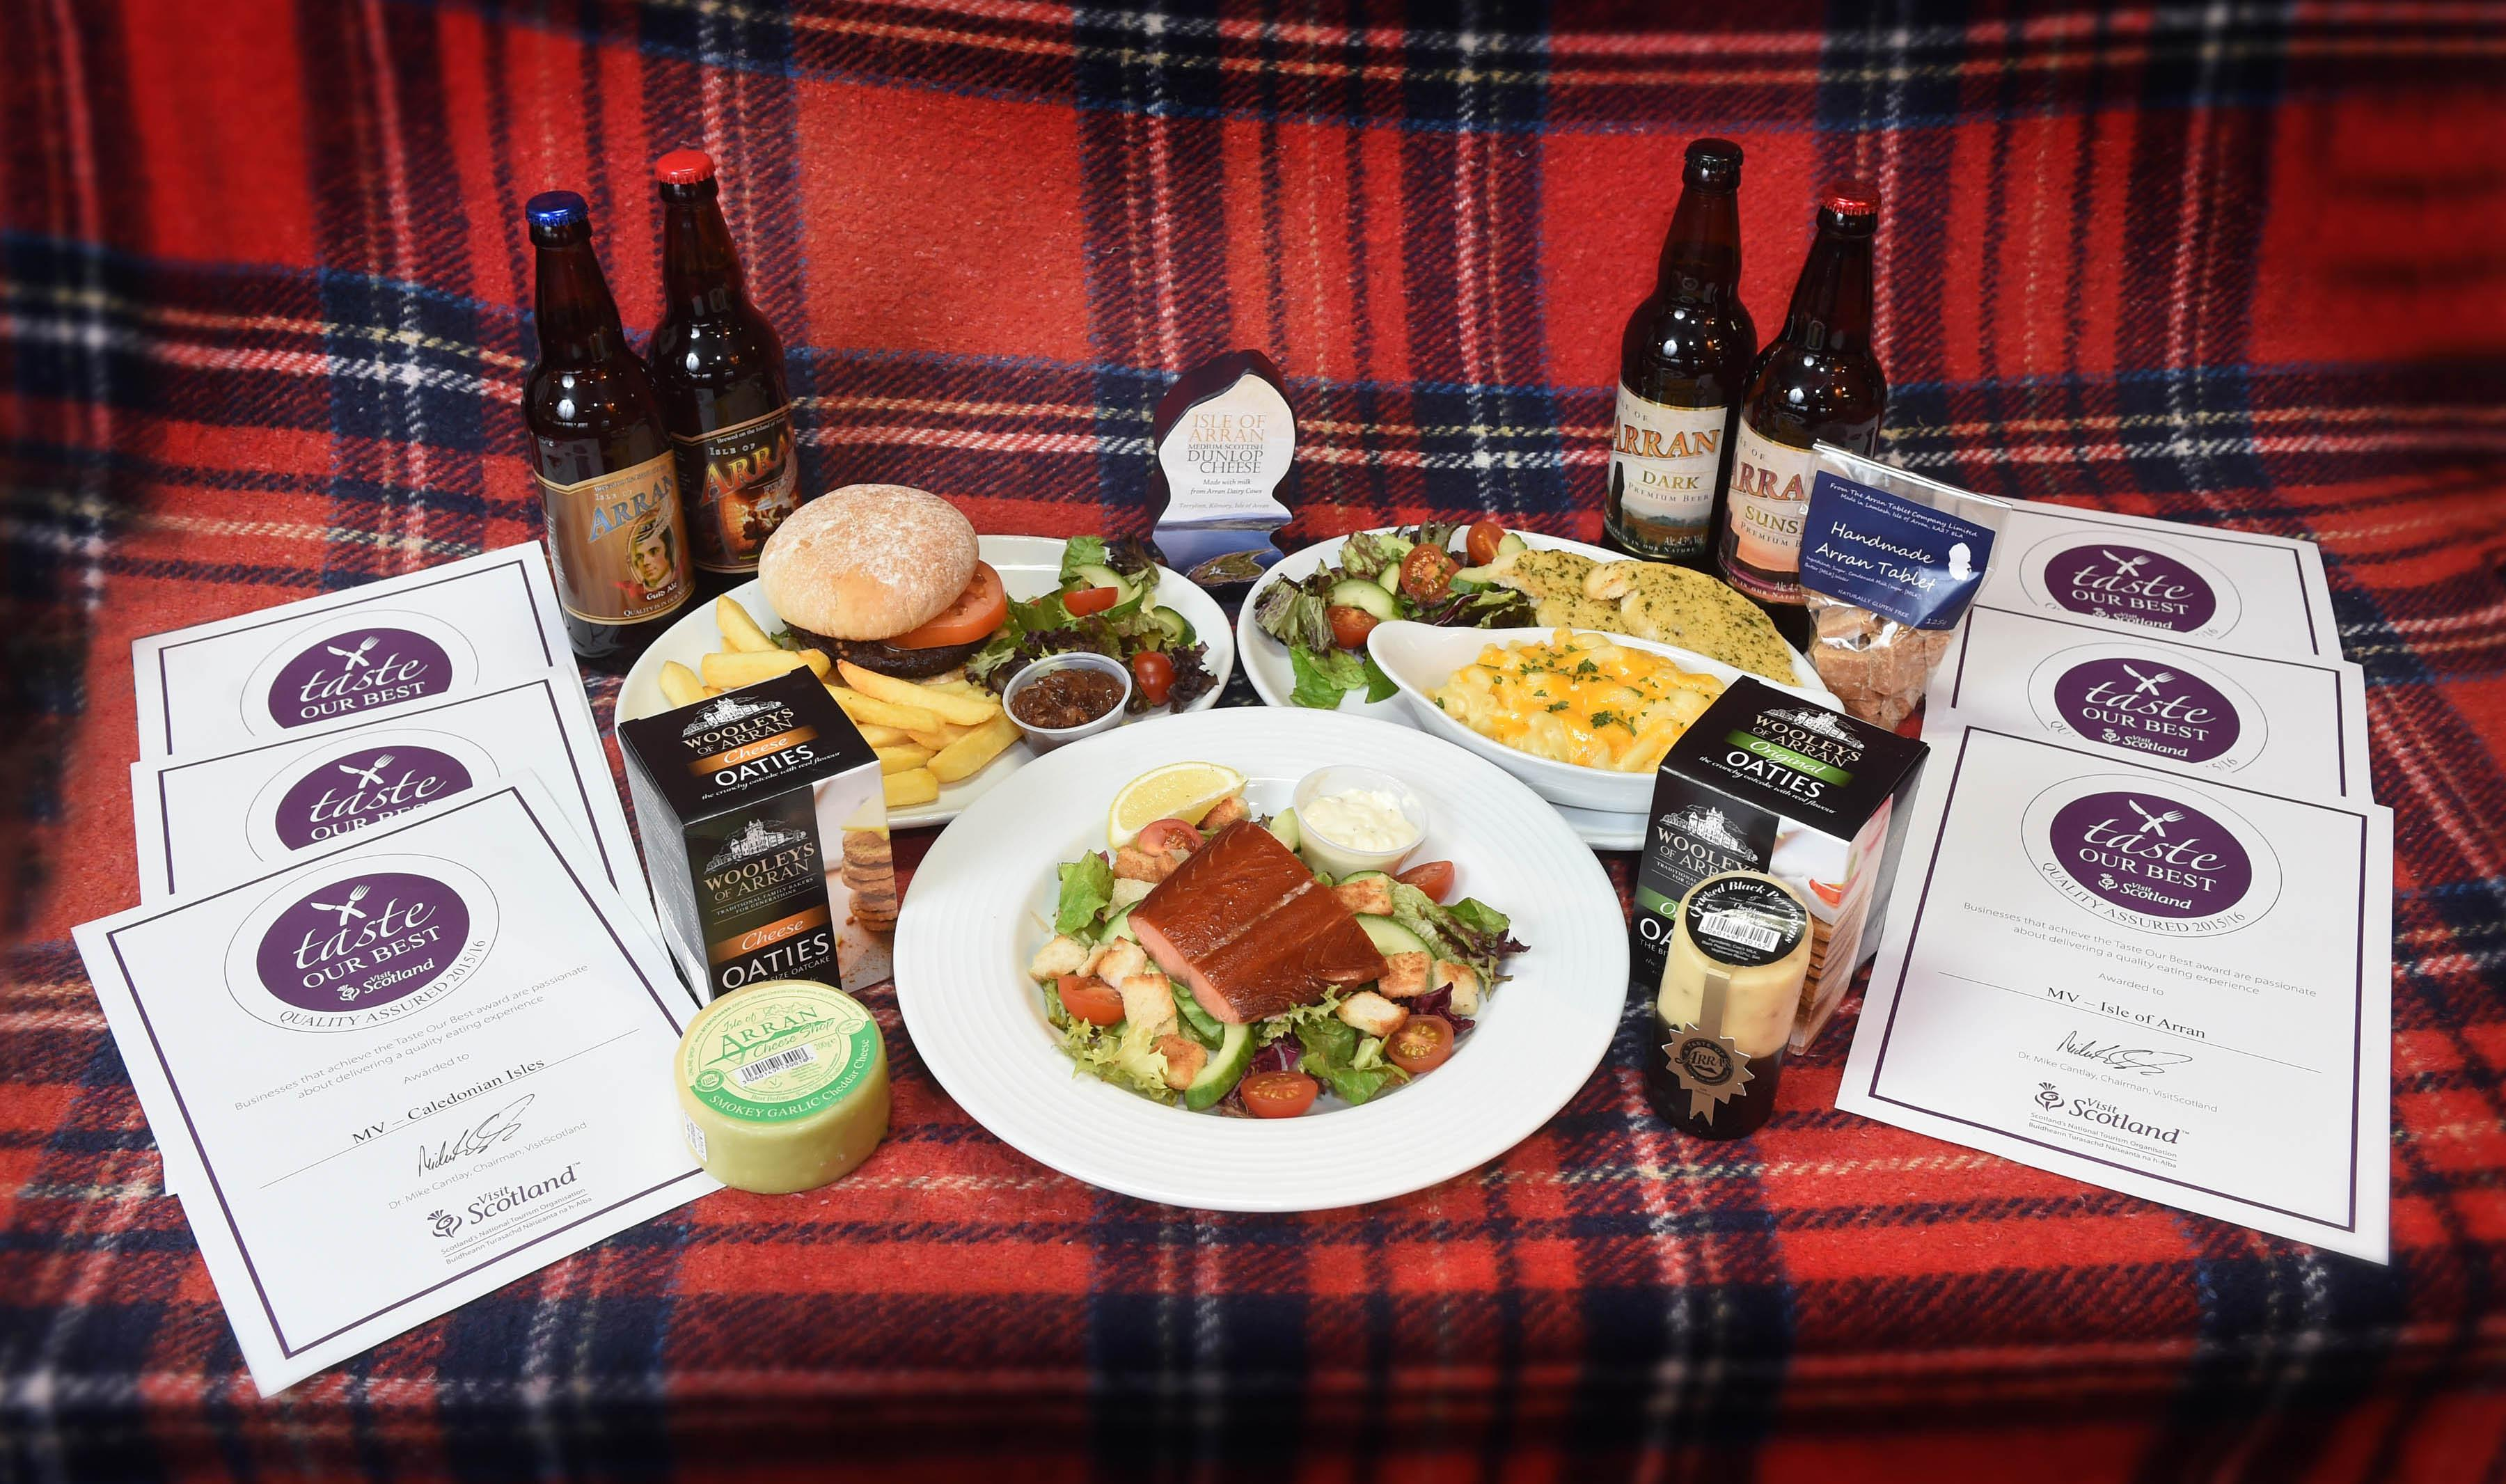 Taste our best awards displayed on a table with plates of freshly made meals served onboard CalMac ferries.